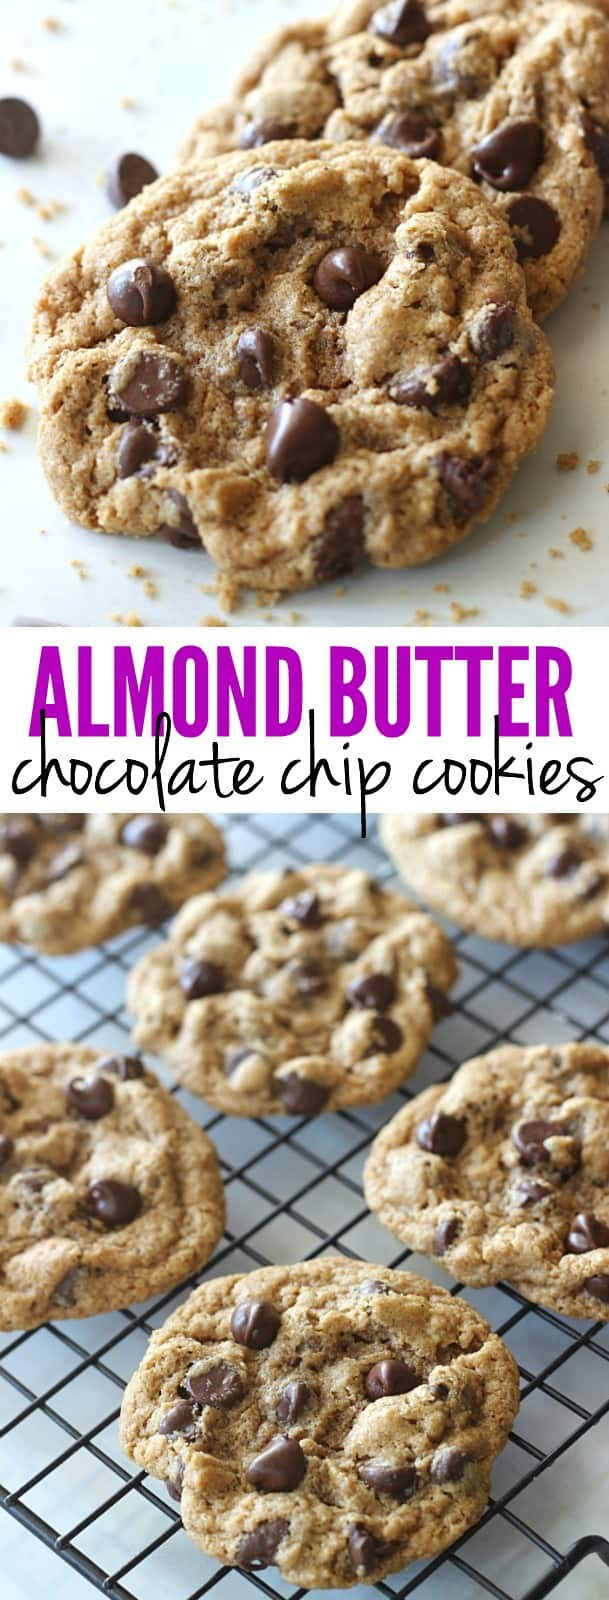 These Almond Butter Chocolate Chip Cookies are made with no flour, oil, or butter. They are perfectly chewy, full of chocolate, and downright addicting!